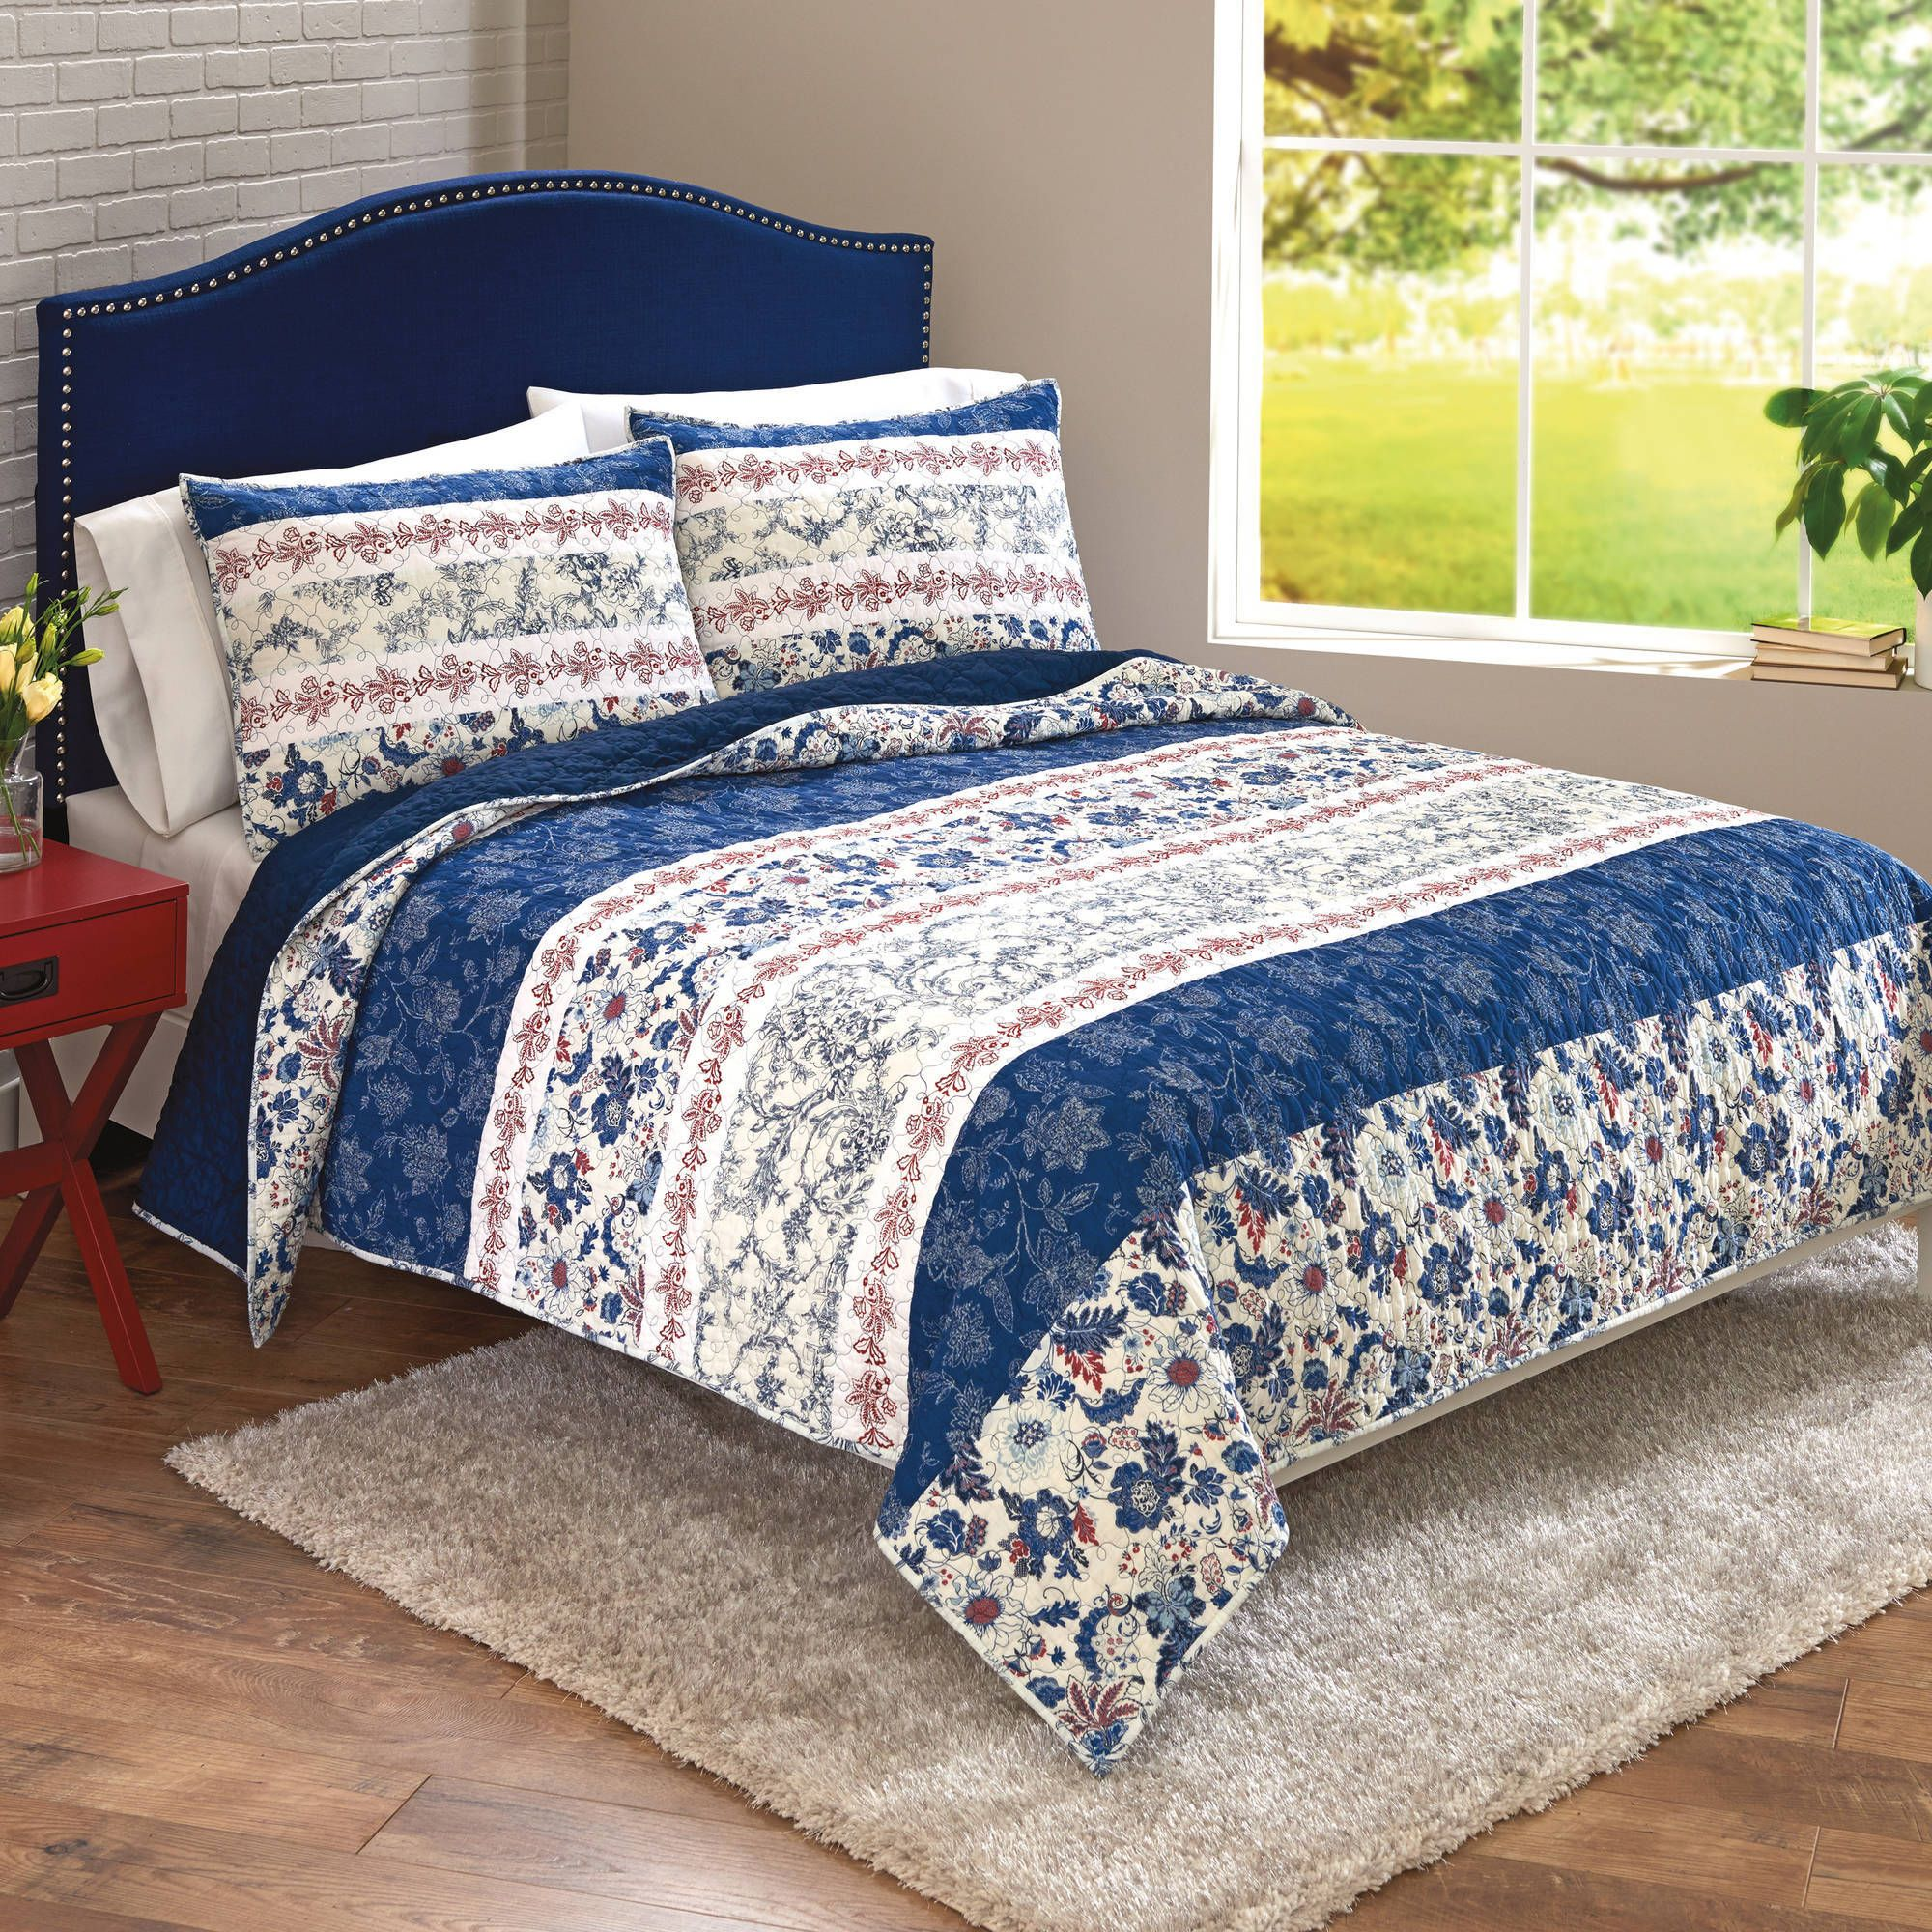 Better Homes and Gardens Blue Floral Patchwork Banded